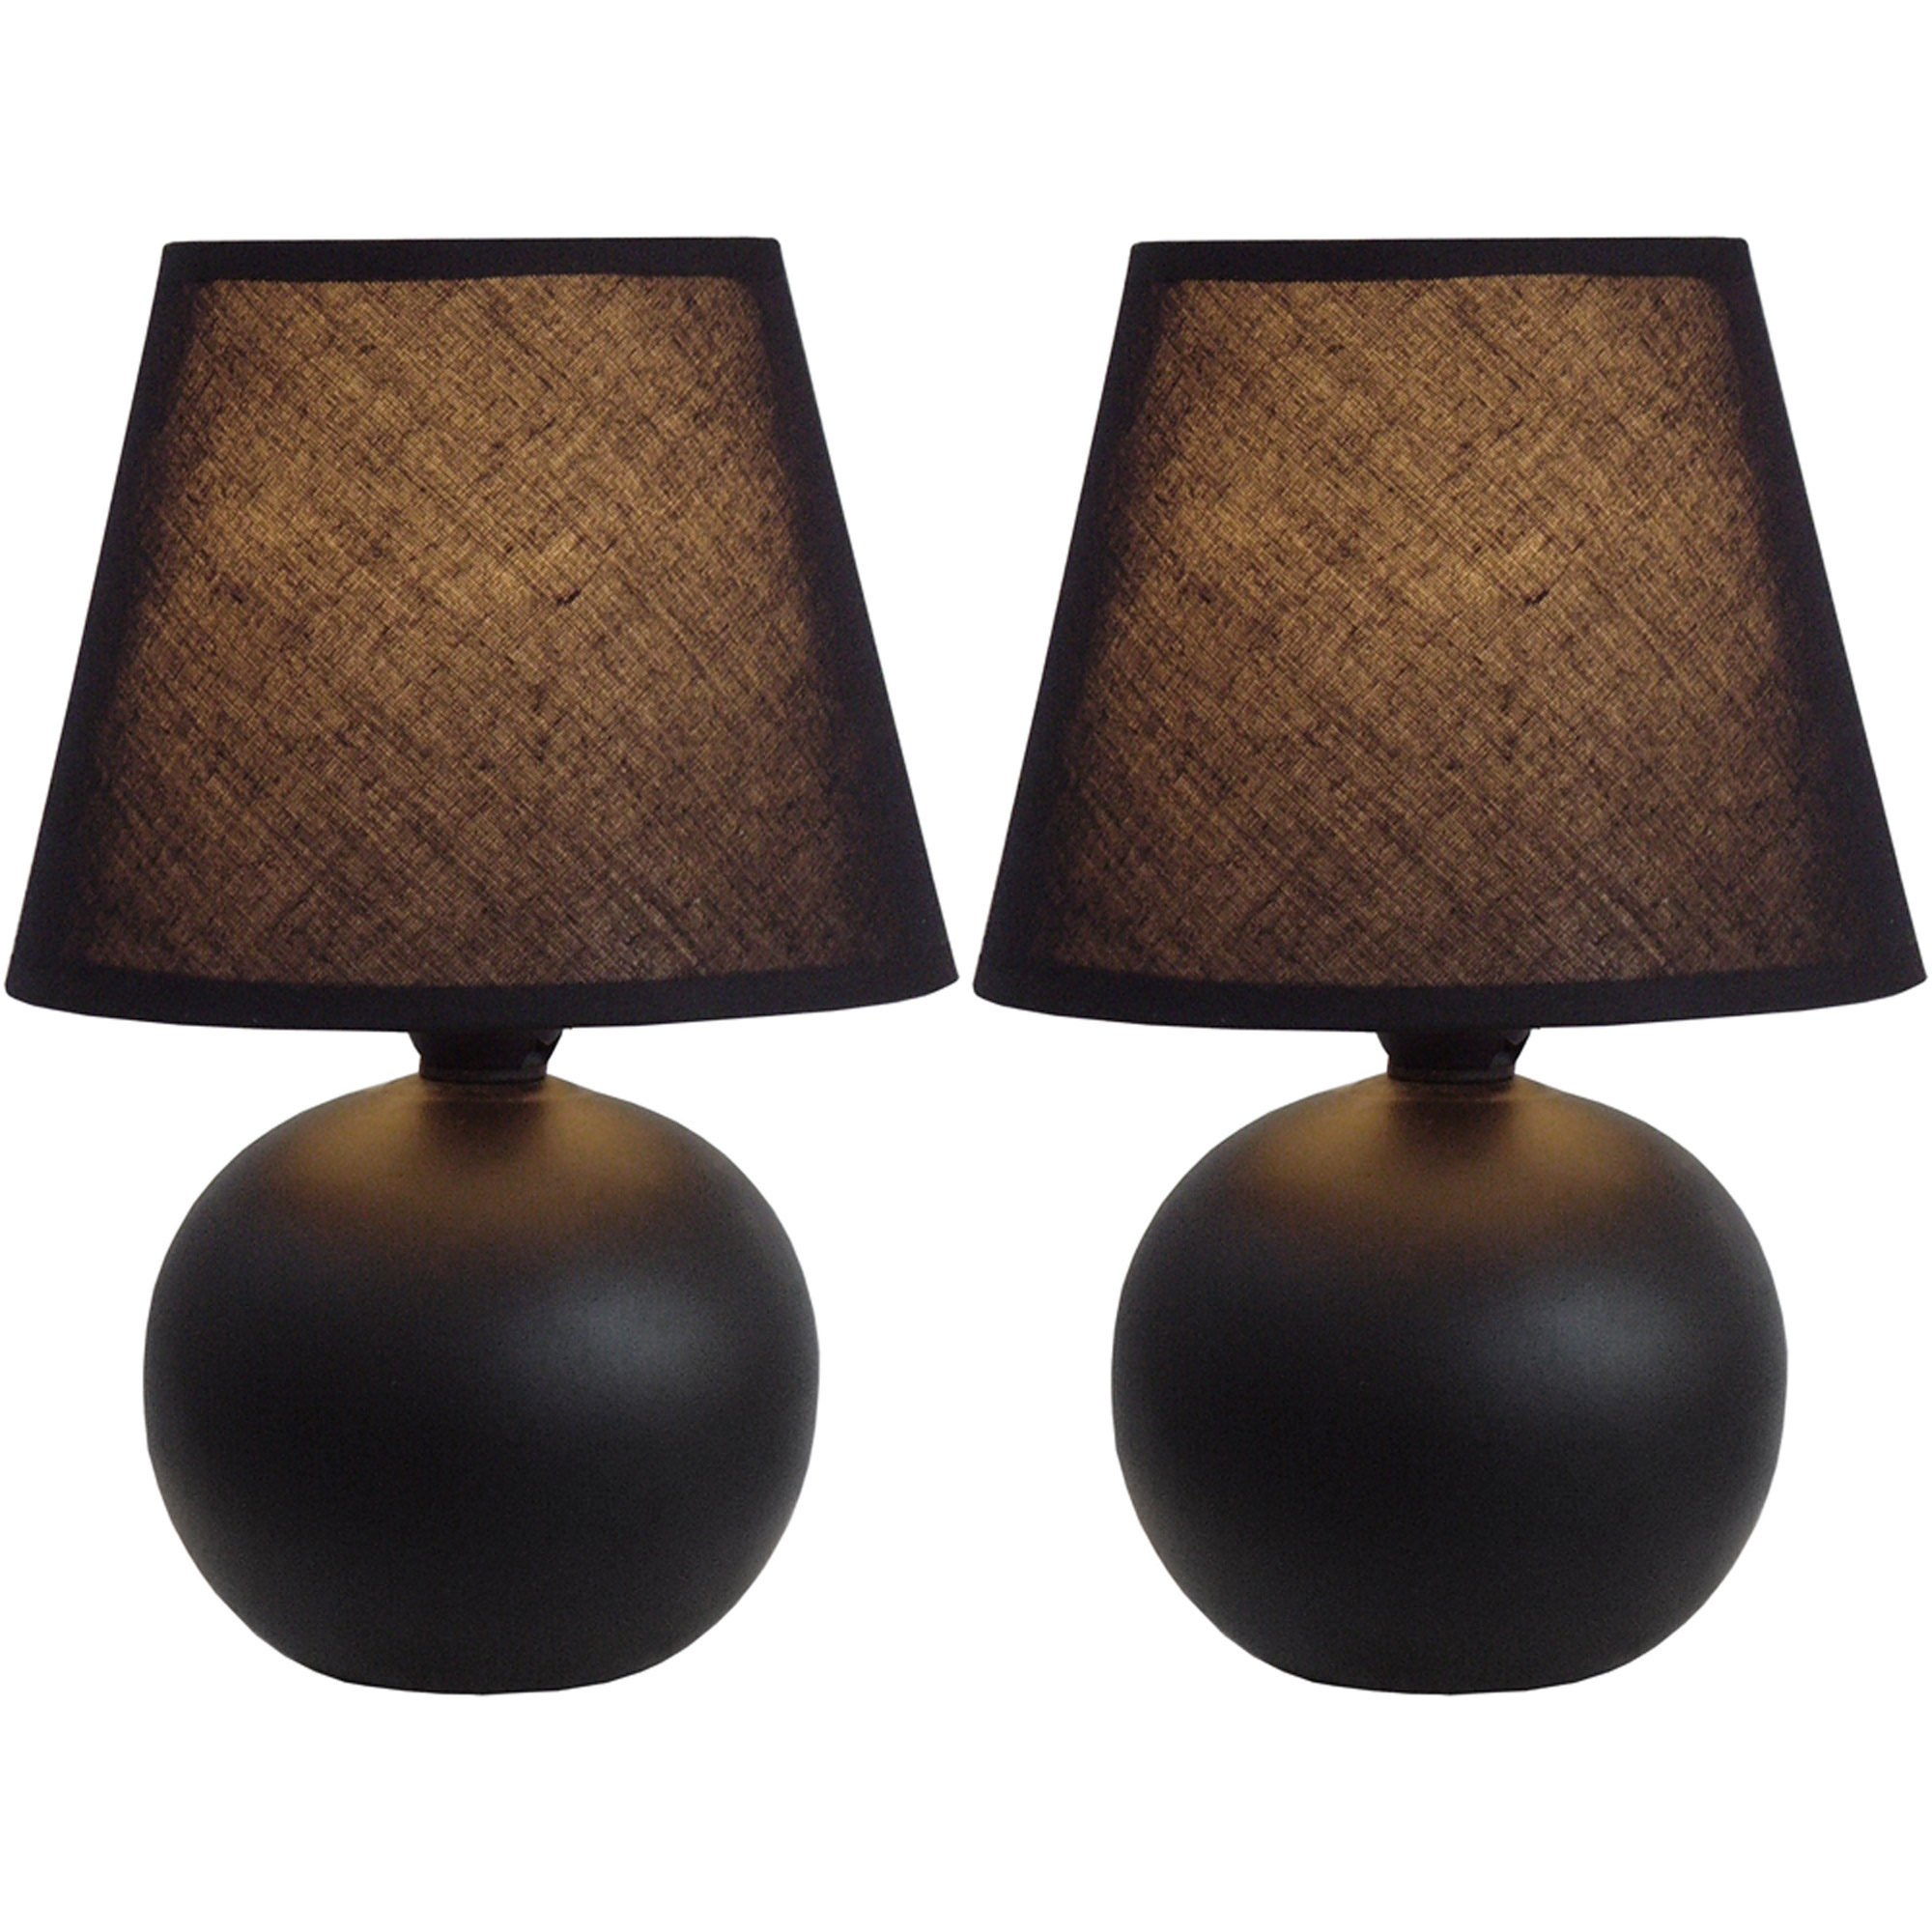 Simple Designs Mini Ceramic Globe Table Lamp 2-Pack Set